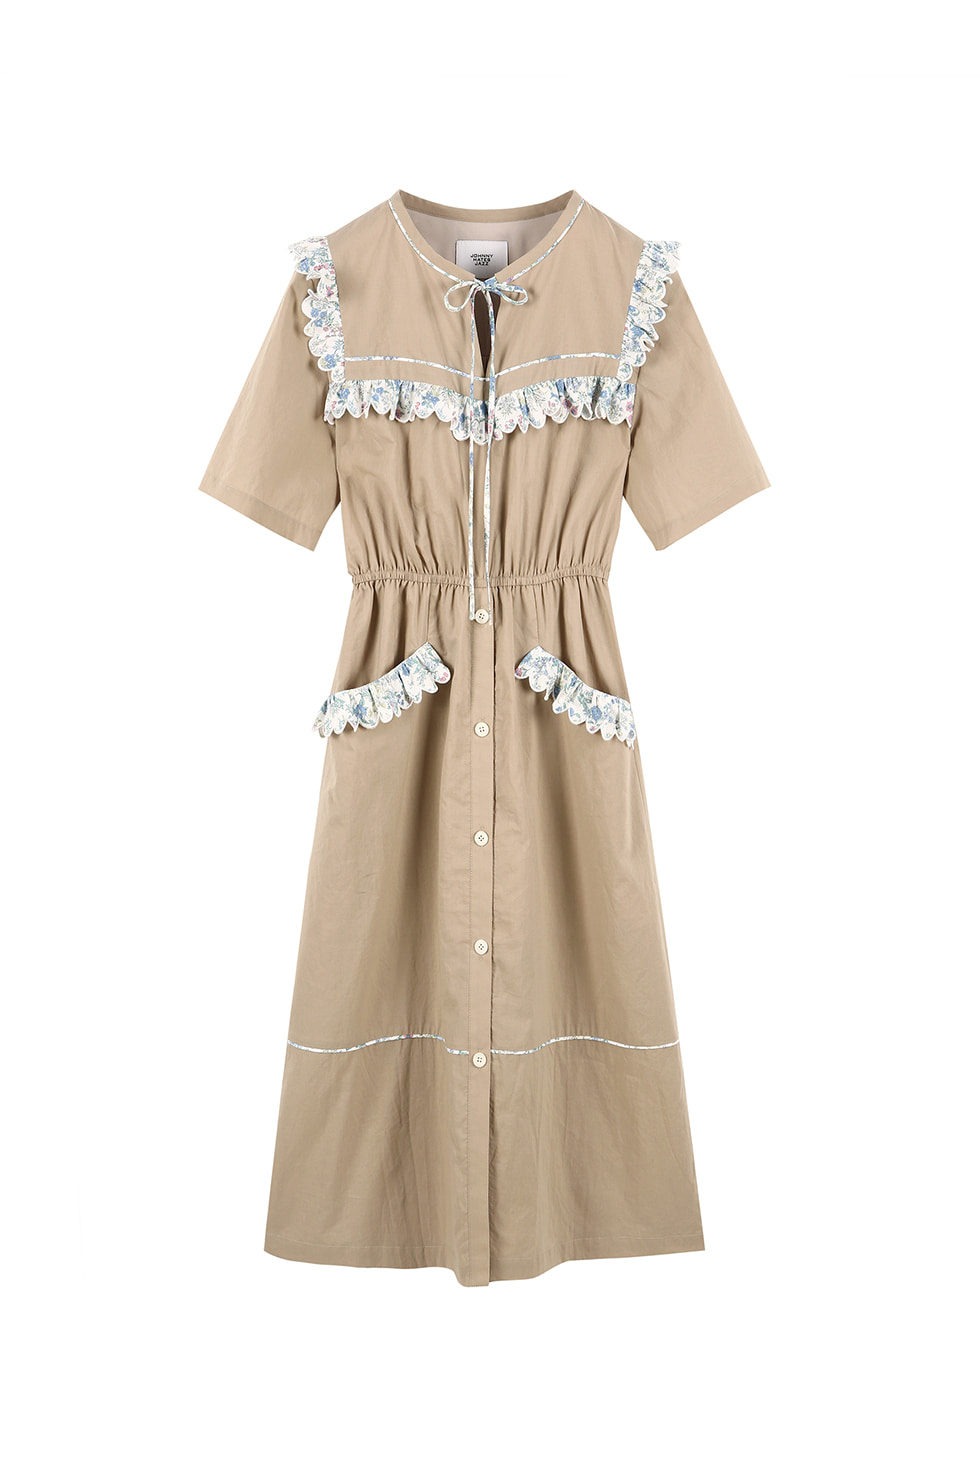 FLORAL COTTON DRESS - BEIGE